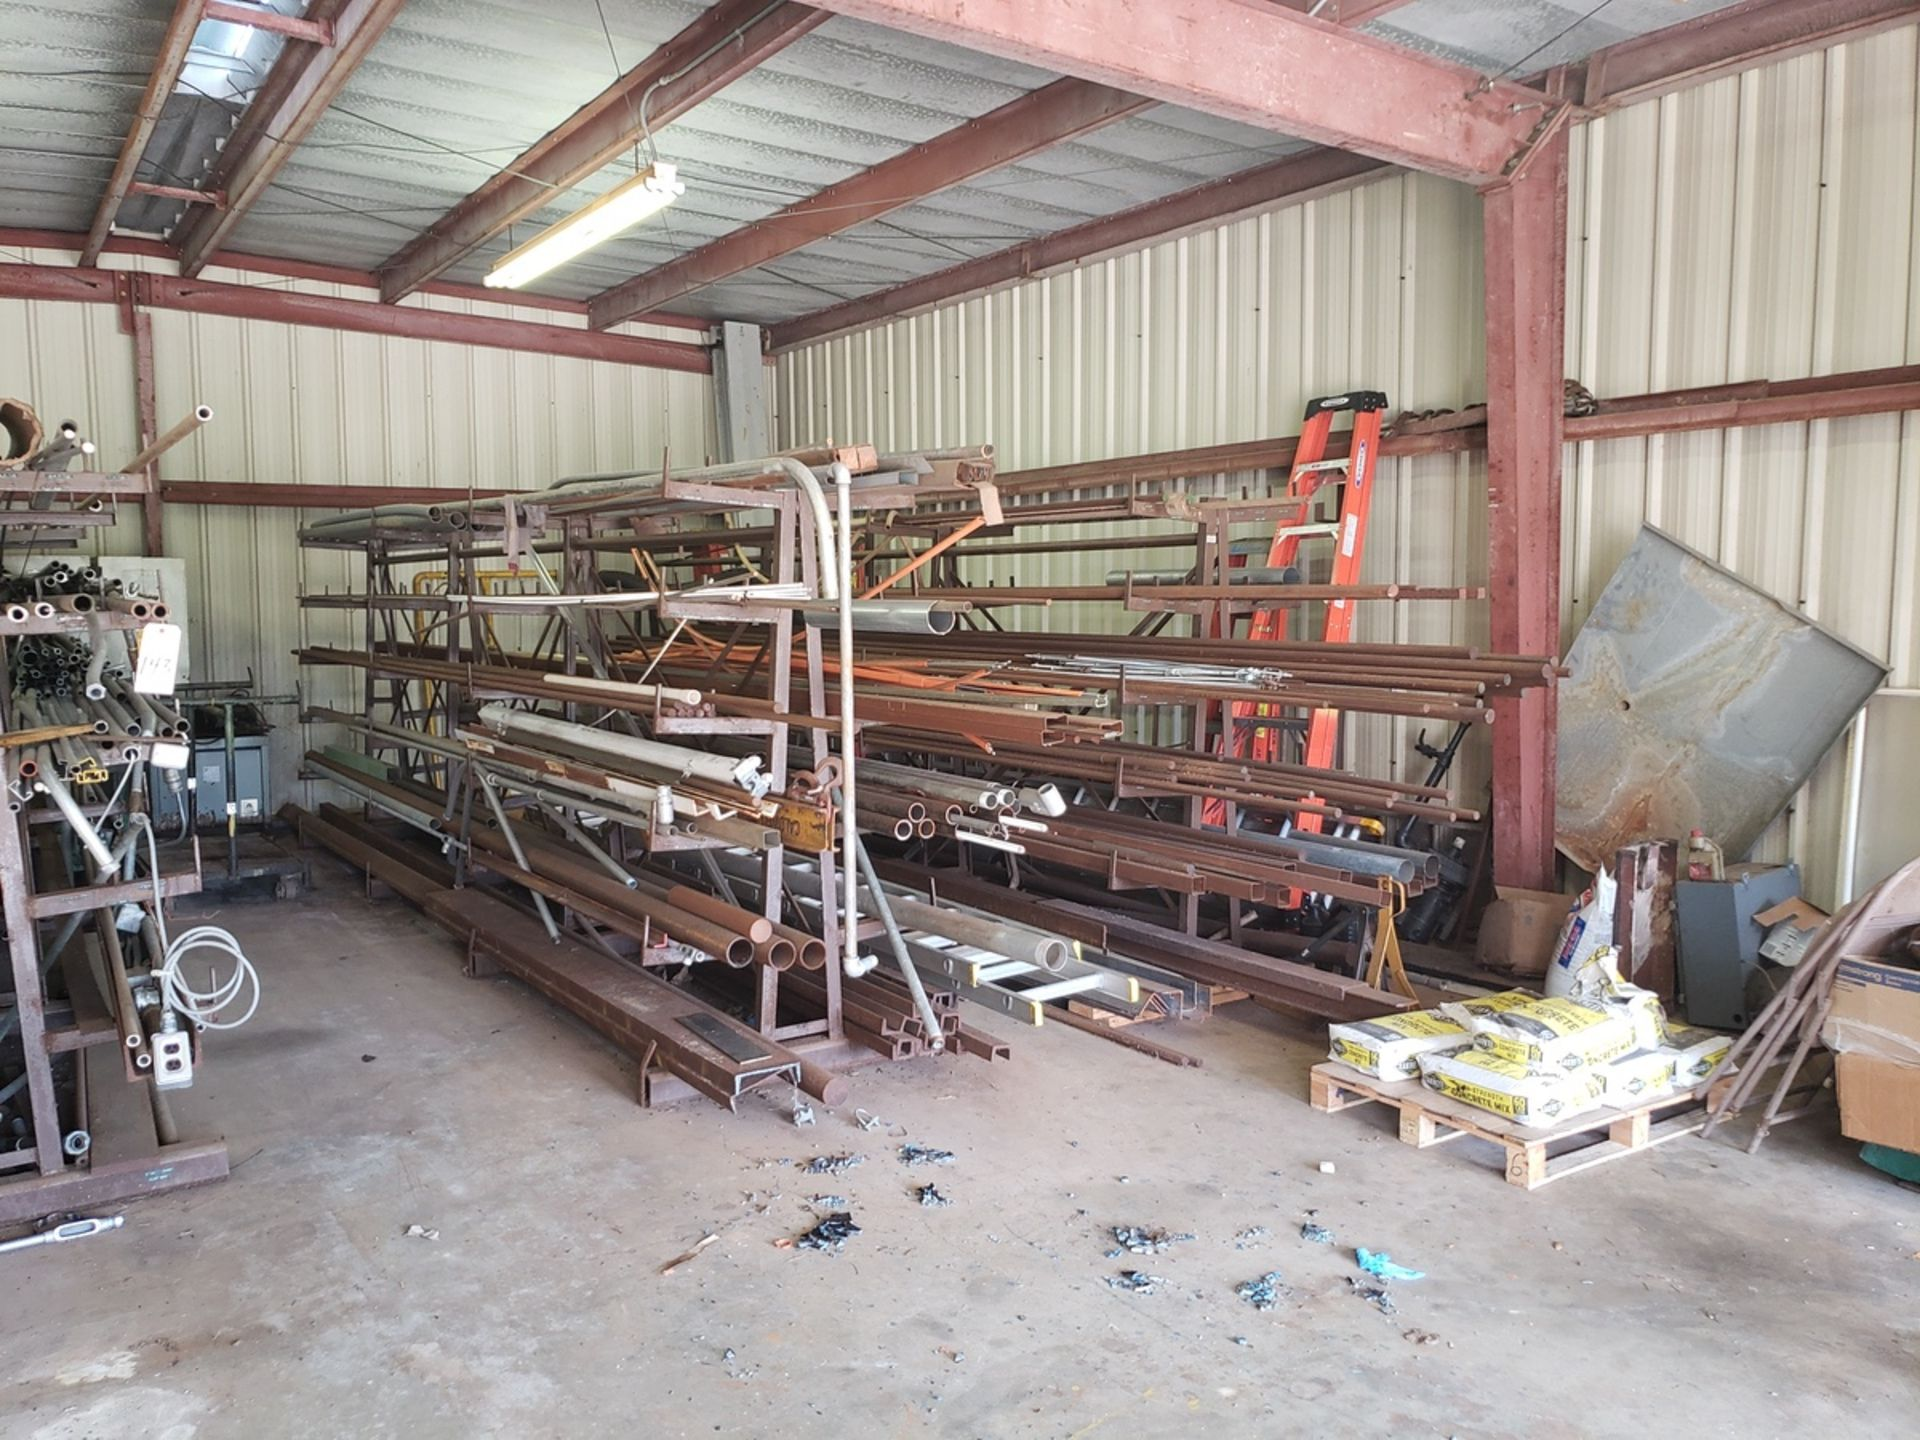 Lot 143 - Contents of Outside Storage Shed | Rig Fee: $350